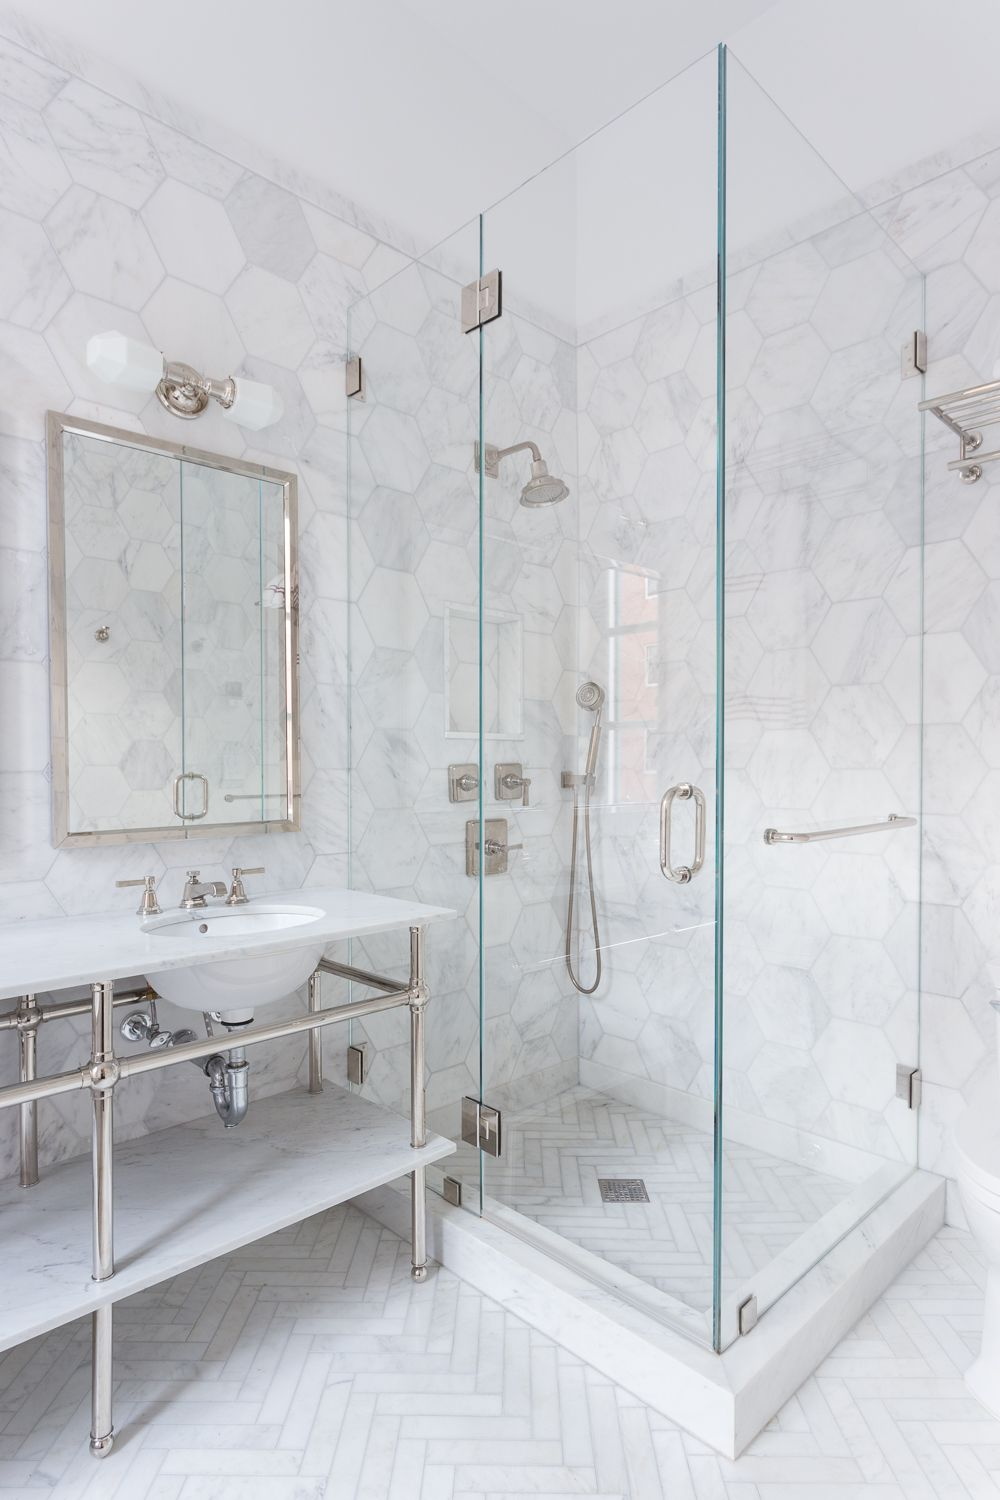 34 Stunning Marble Bathrooms with Silver Fixtures | Pinterest ...